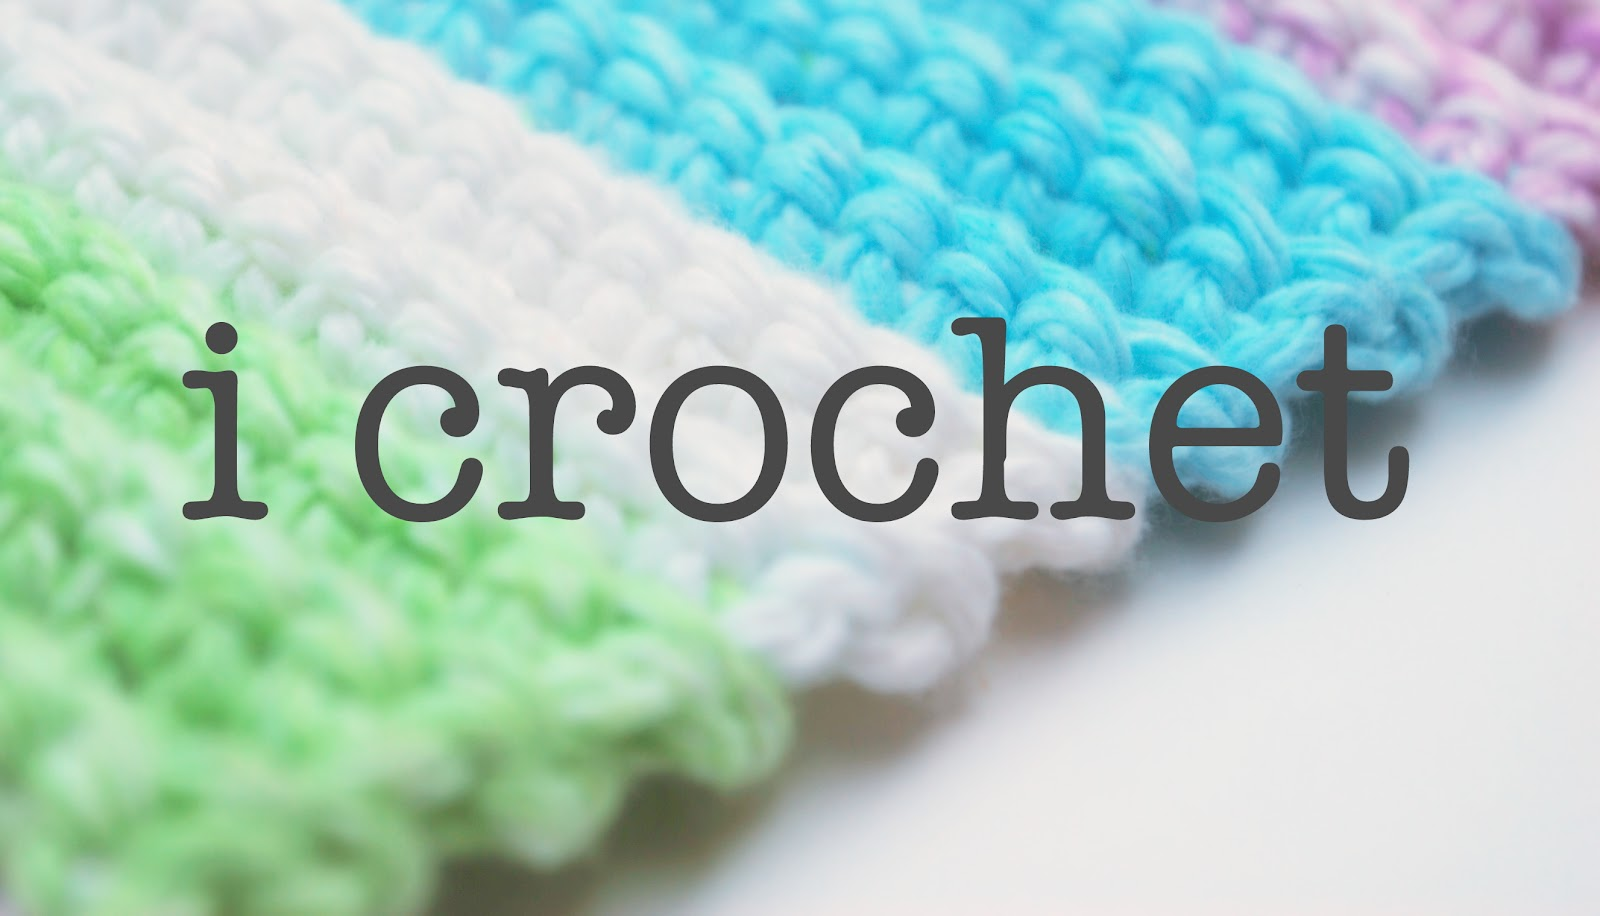 Crocheting Business : Crochet Business Card Templates Image